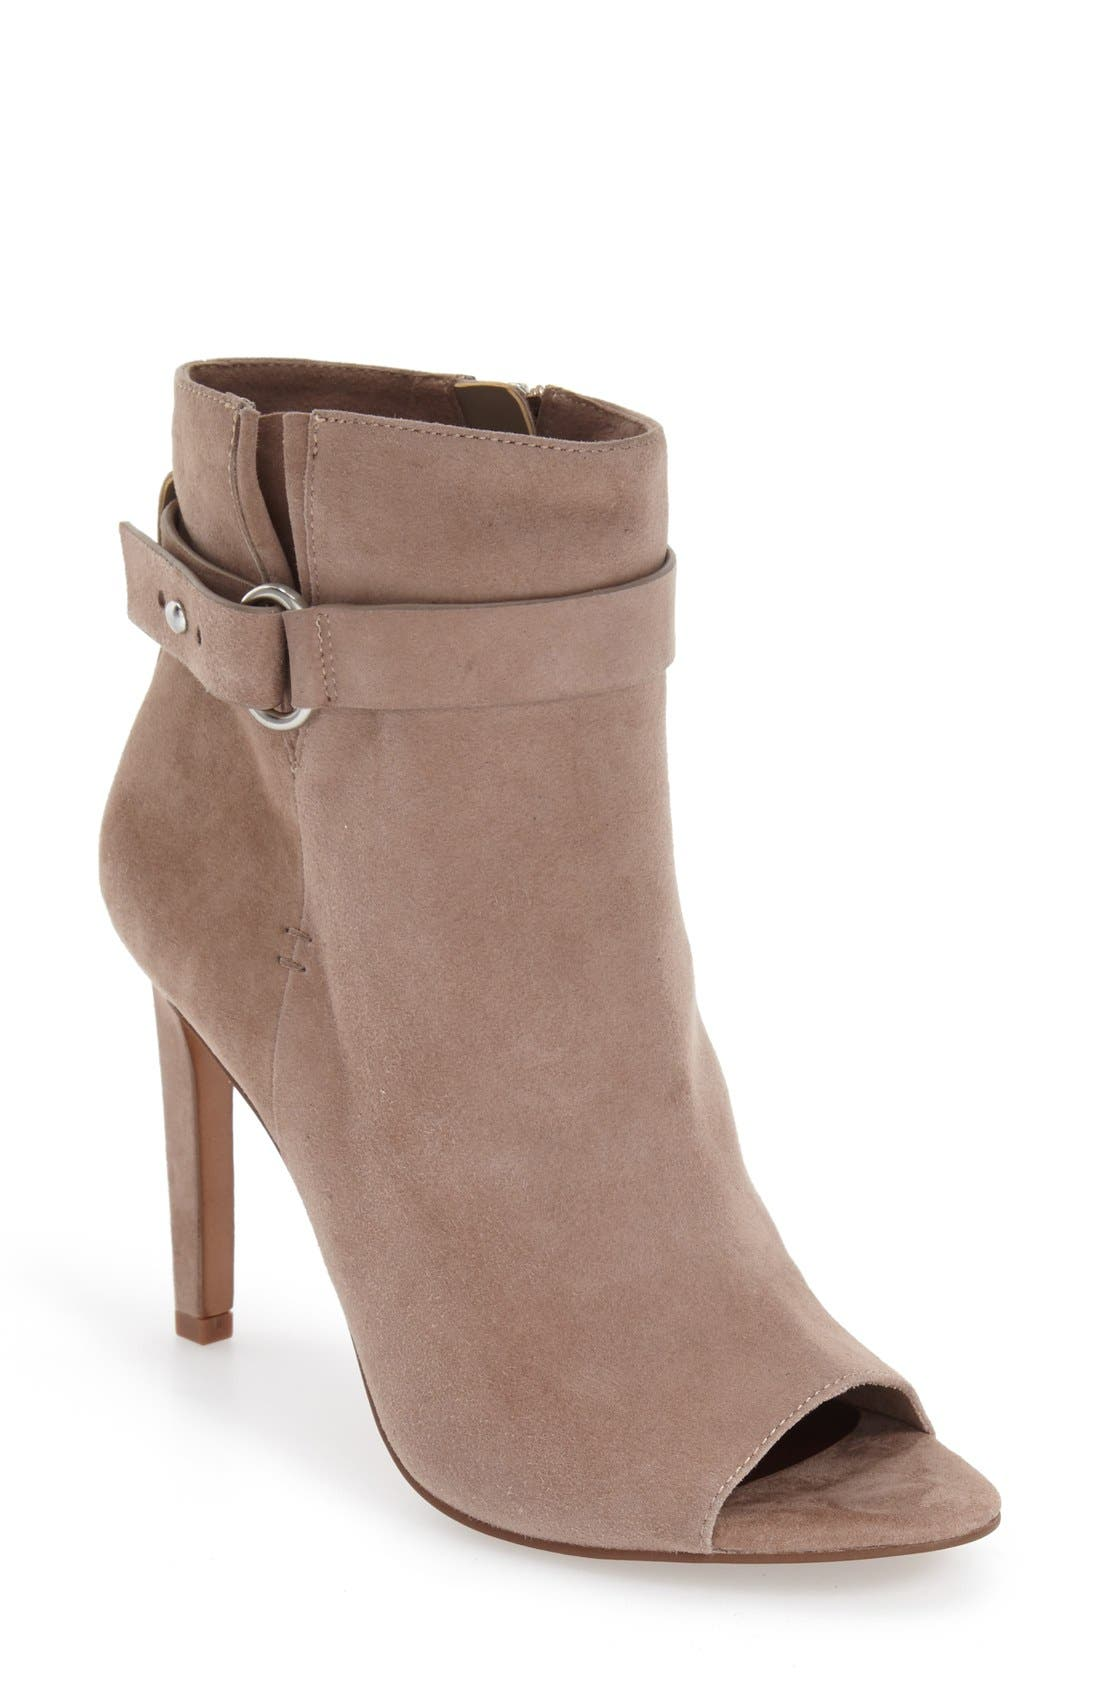 Main Image - BCBGeneration 'Carolena' Peep Toe Bootie (Women)